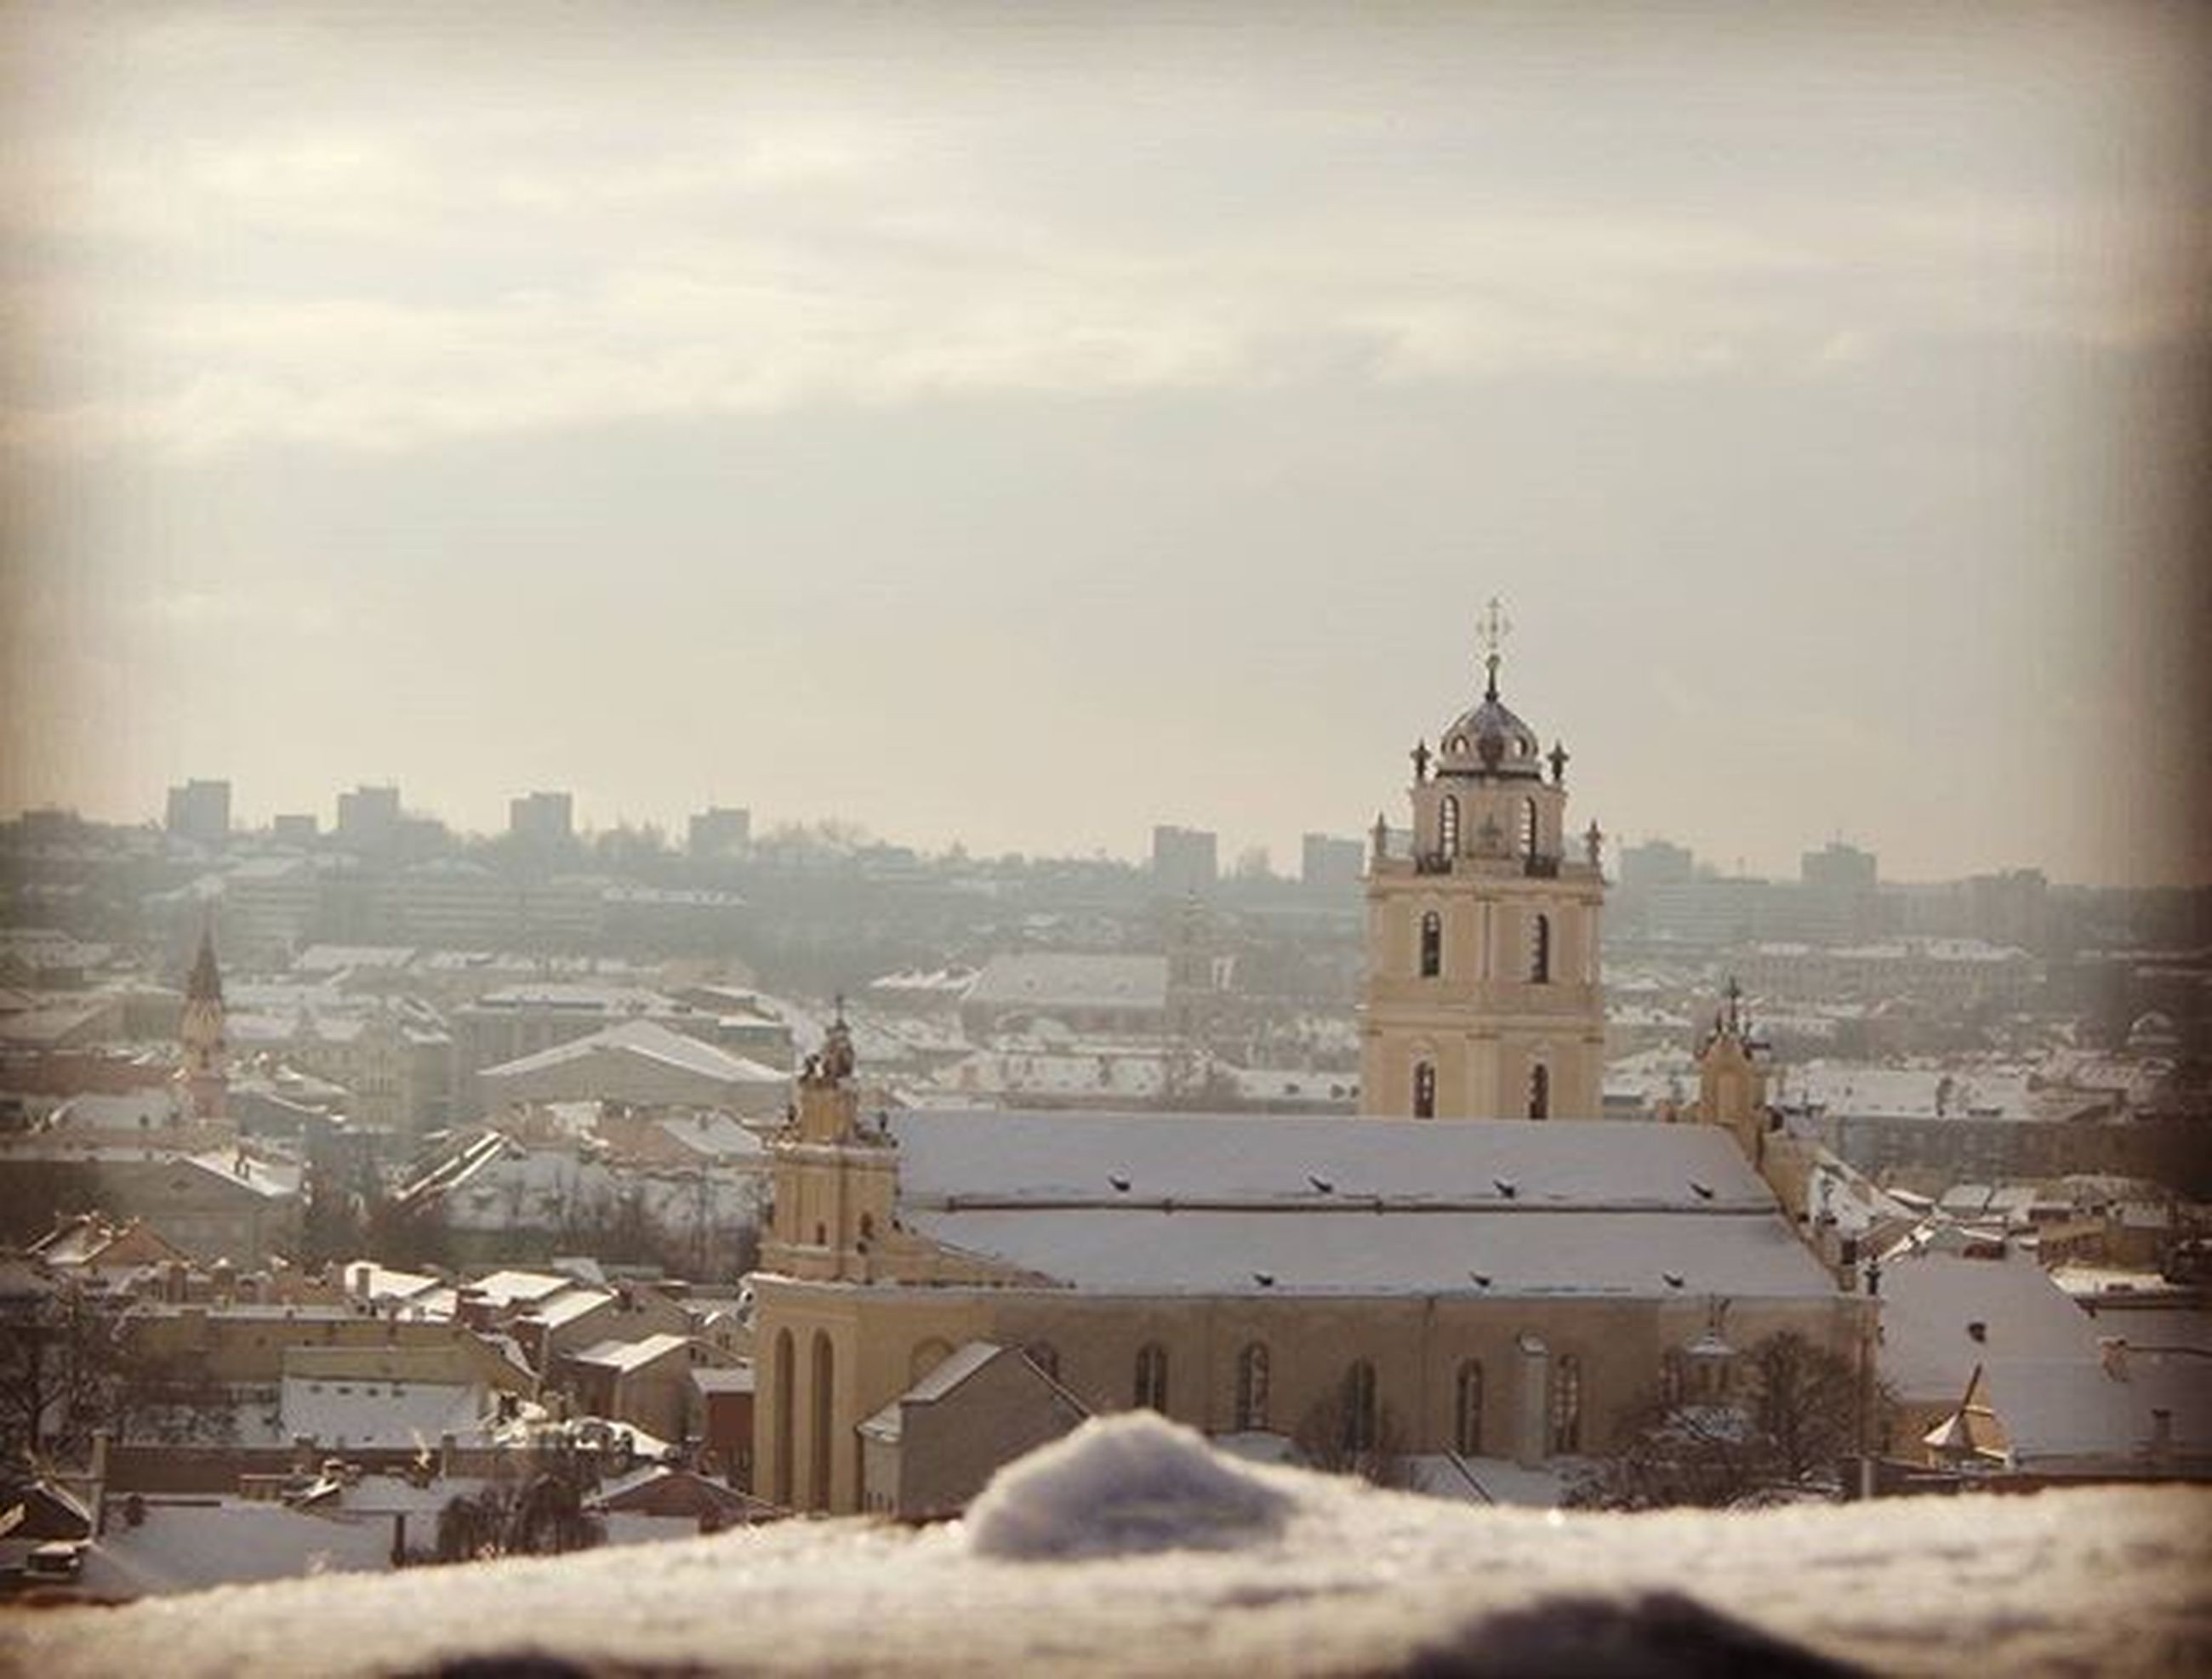 building exterior, winter, architecture, snow, cold temperature, built structure, weather, season, city, cityscape, sky, covering, religion, church, cloud - sky, place of worship, high angle view, residential structure, frozen, residential building